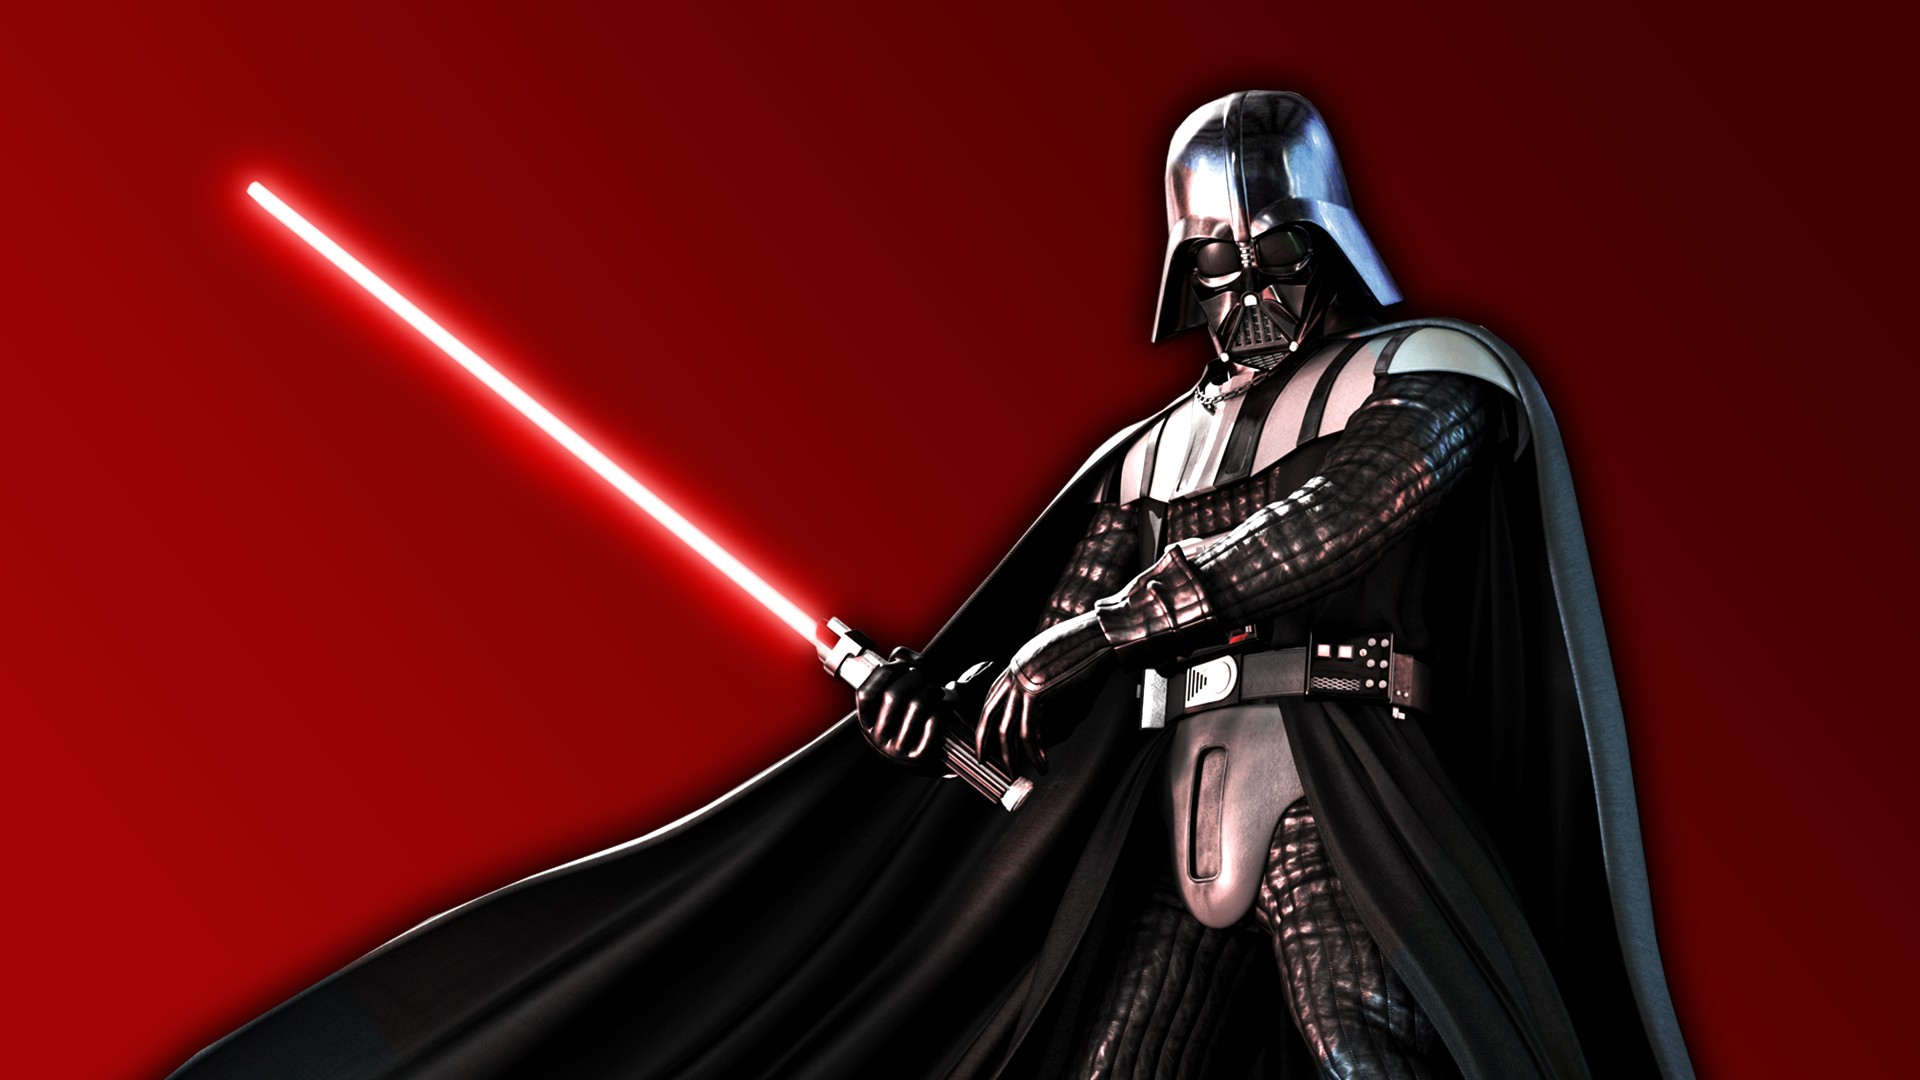 Darth Vader Wallpaper Desktop Backgrounds Src Darth Lord Vader Vs Anakin 1920x1080 Wallpaper Teahub Io